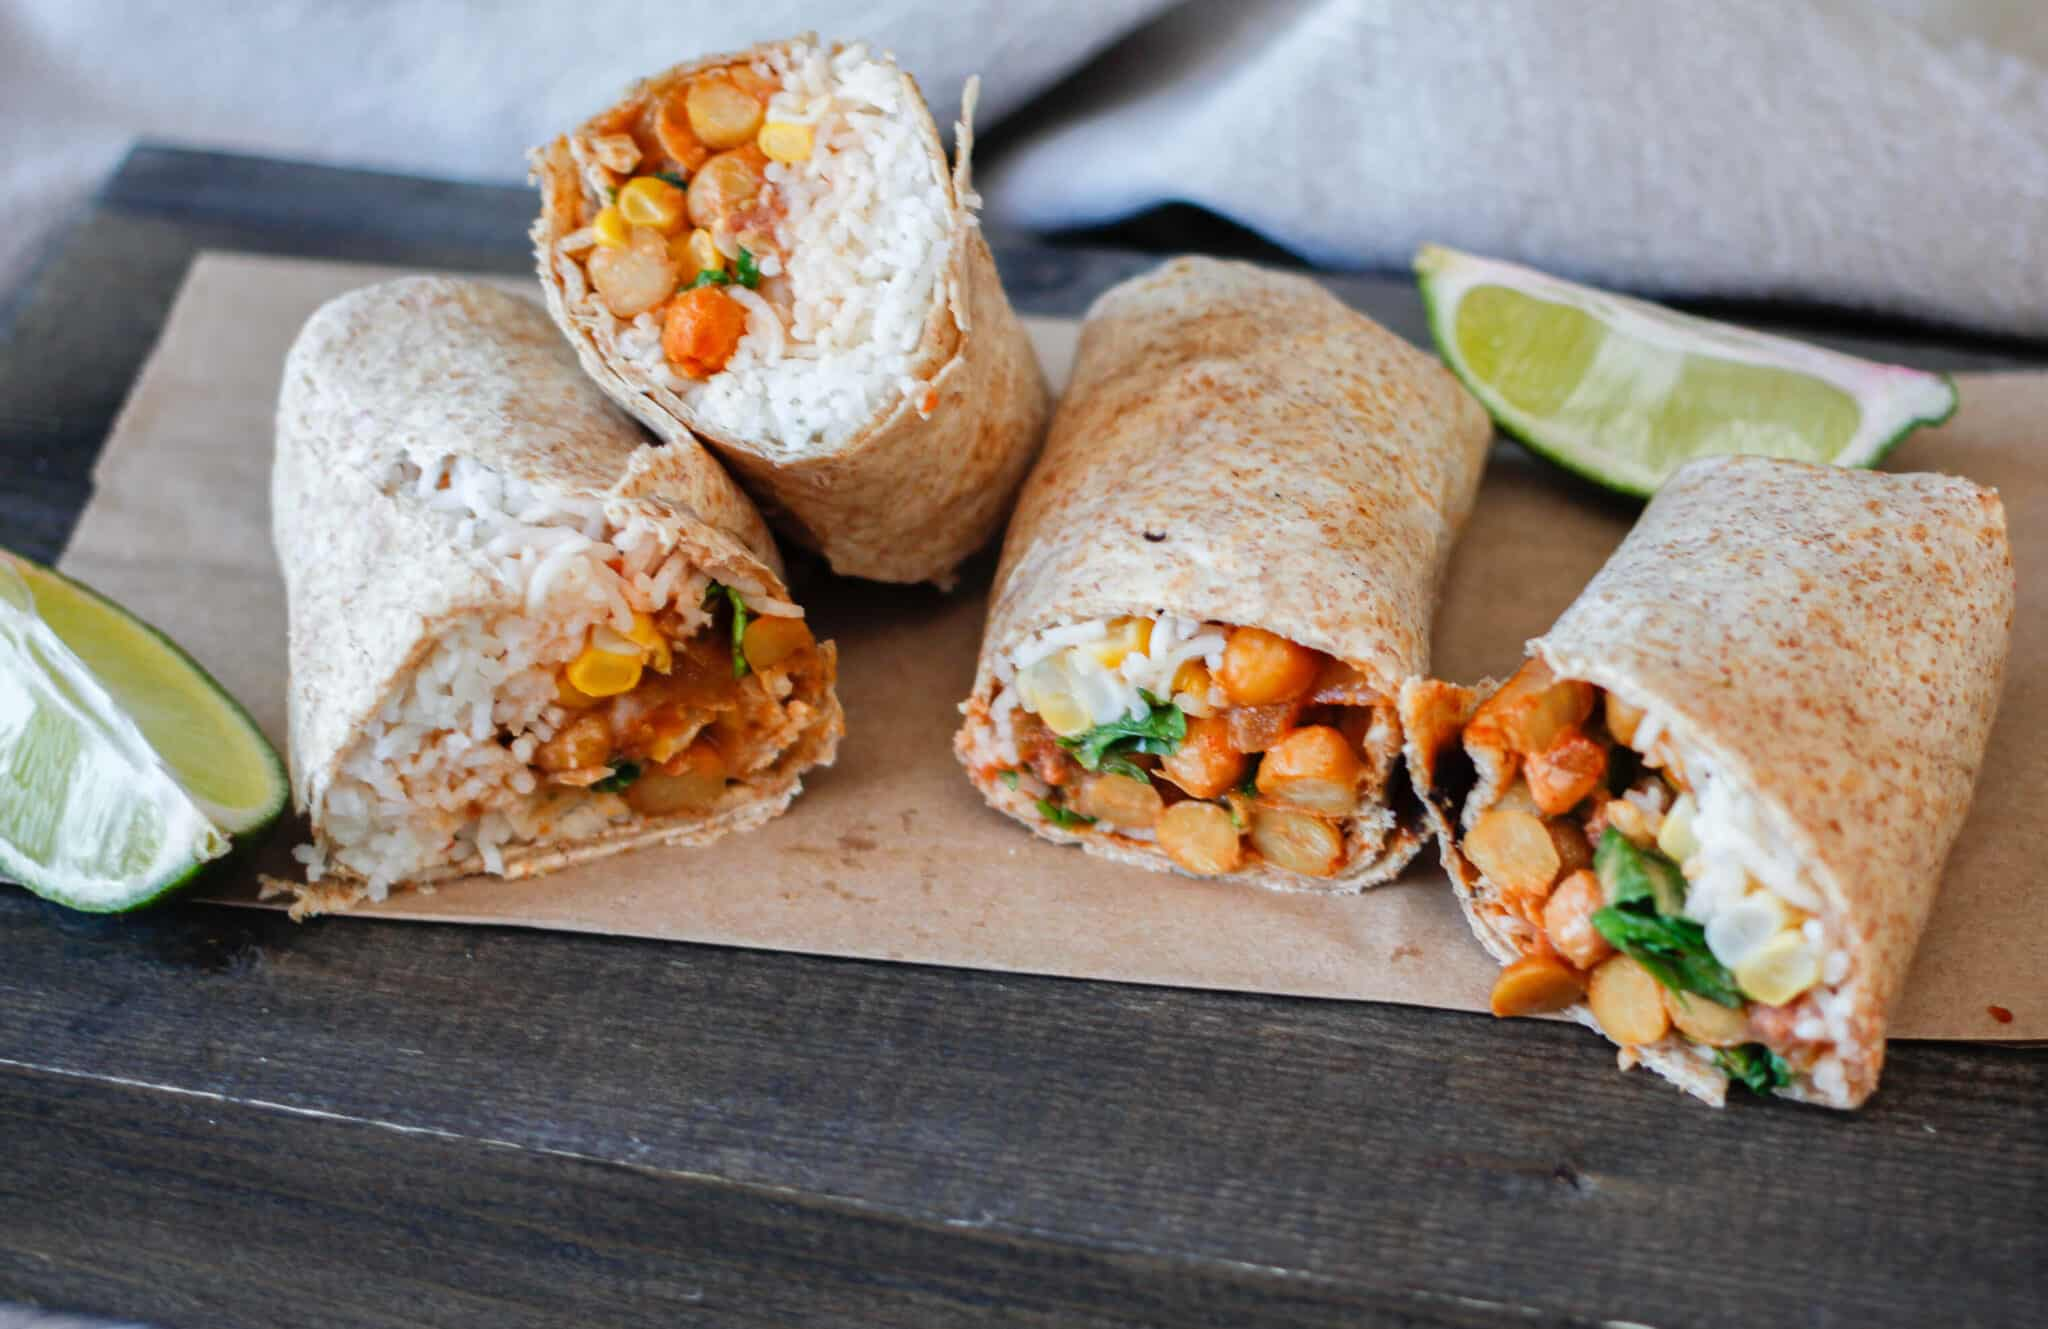 chickpea wraps cut in half on a table